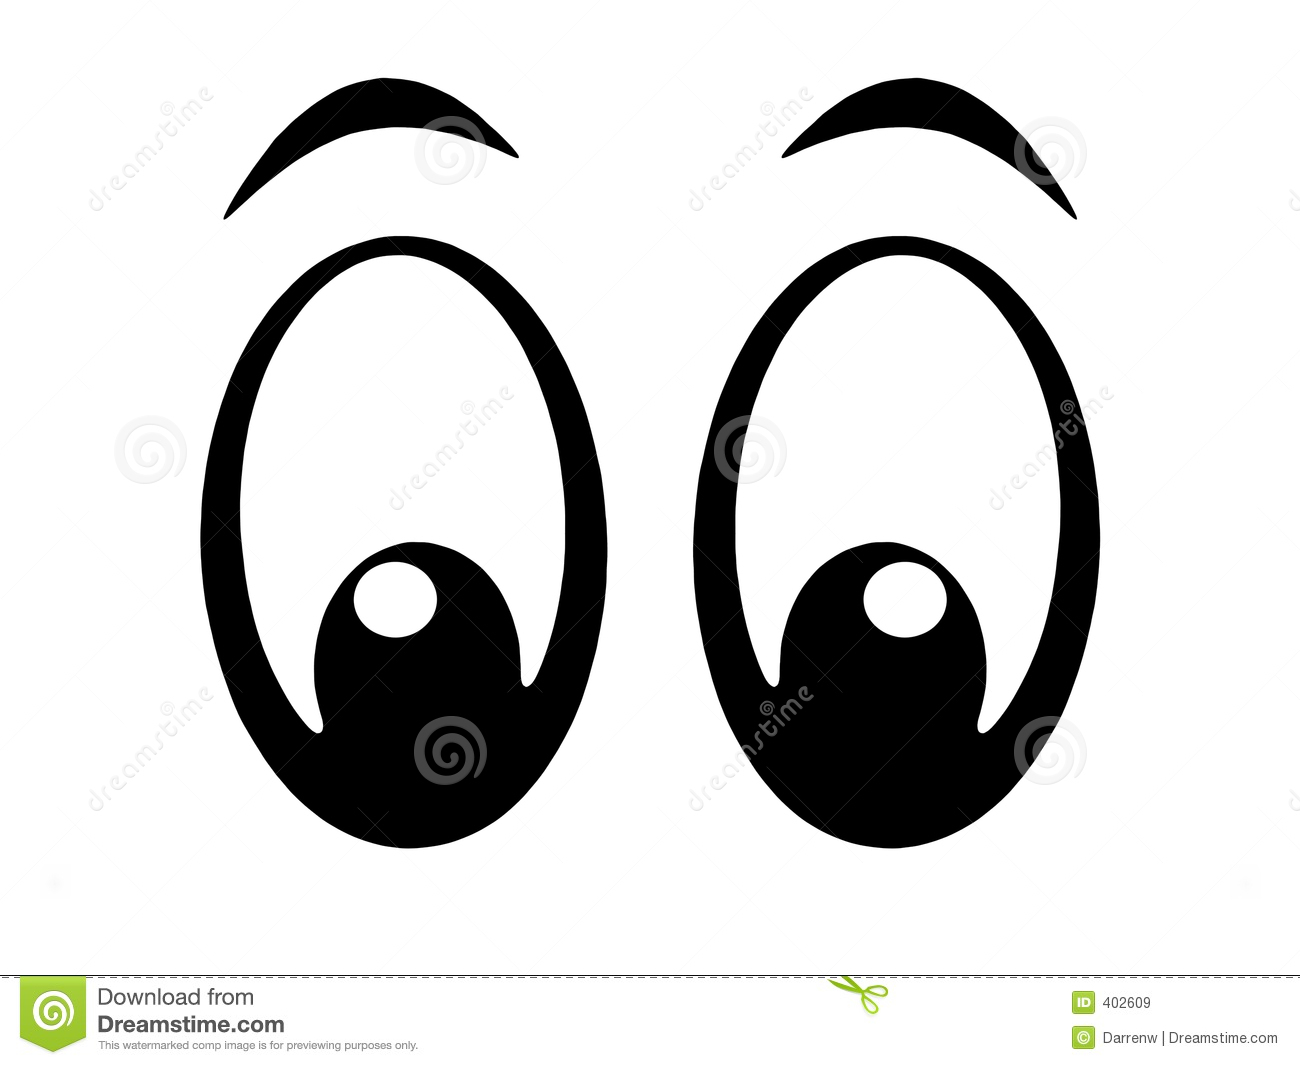 animal eye clipart black and white